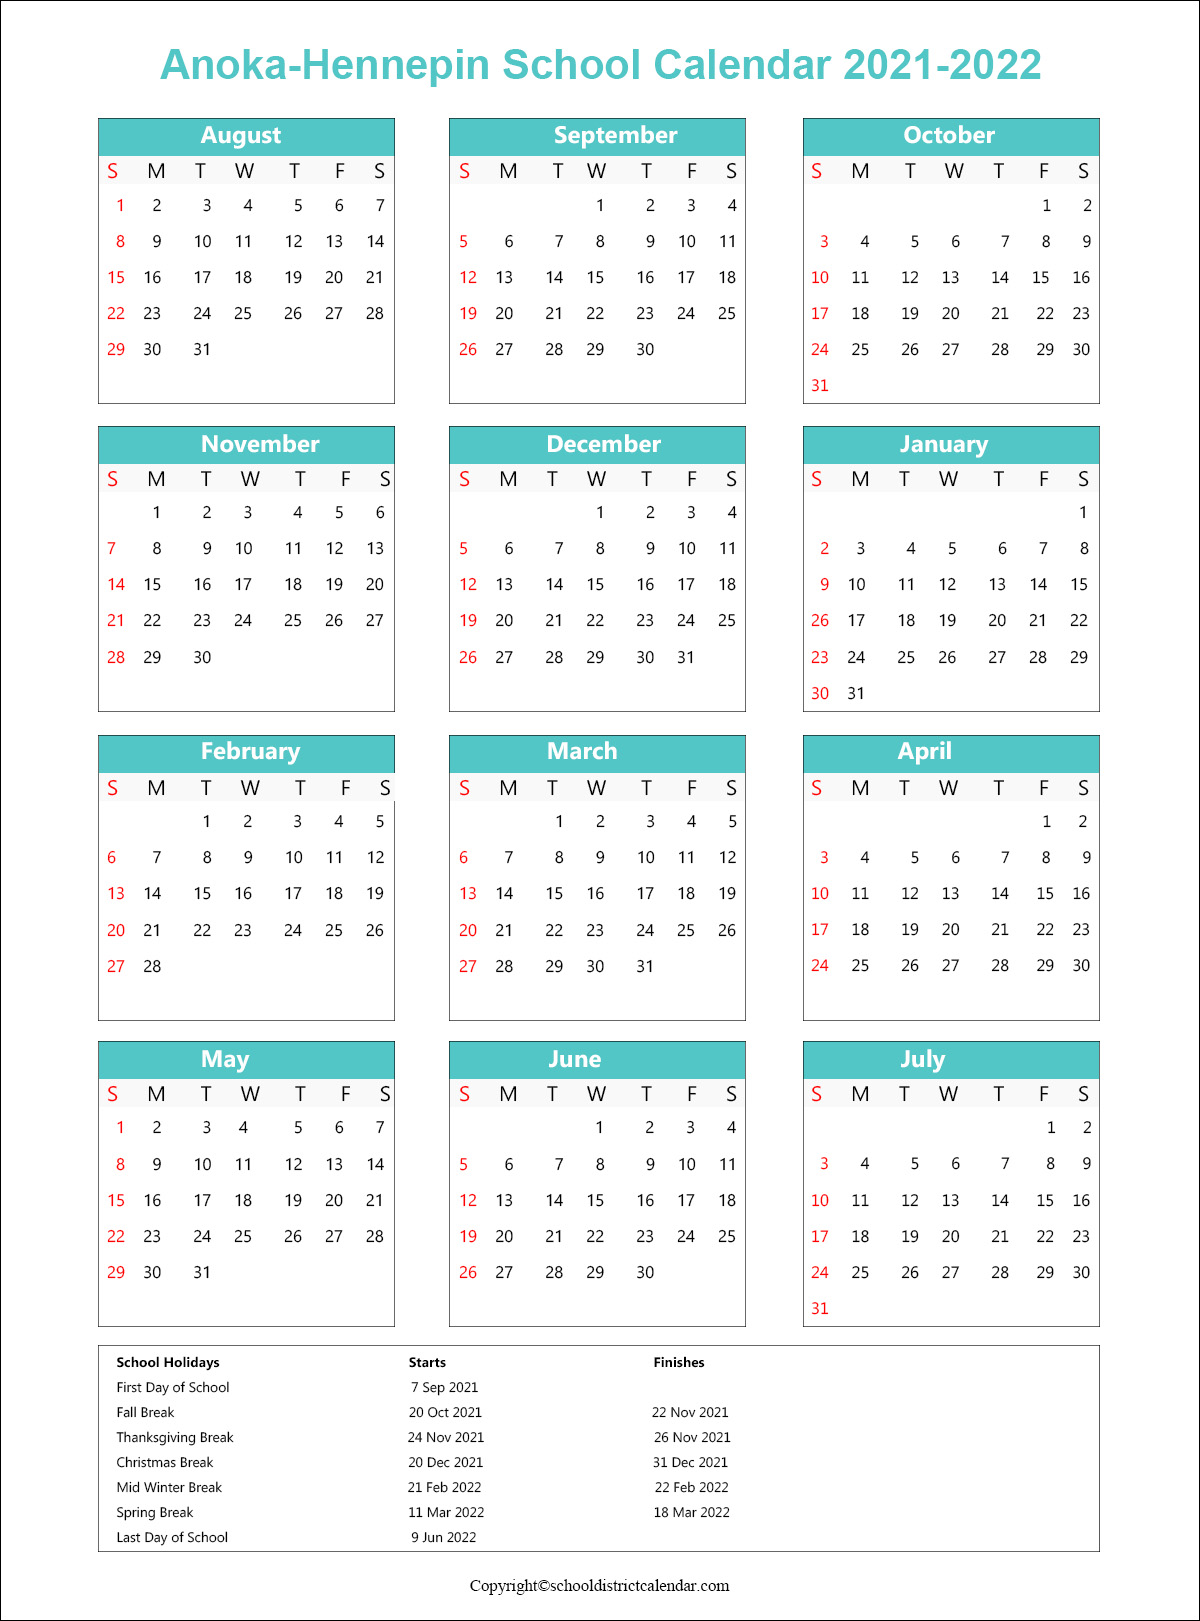 Anoka-Hennepin School District Calendar 2021